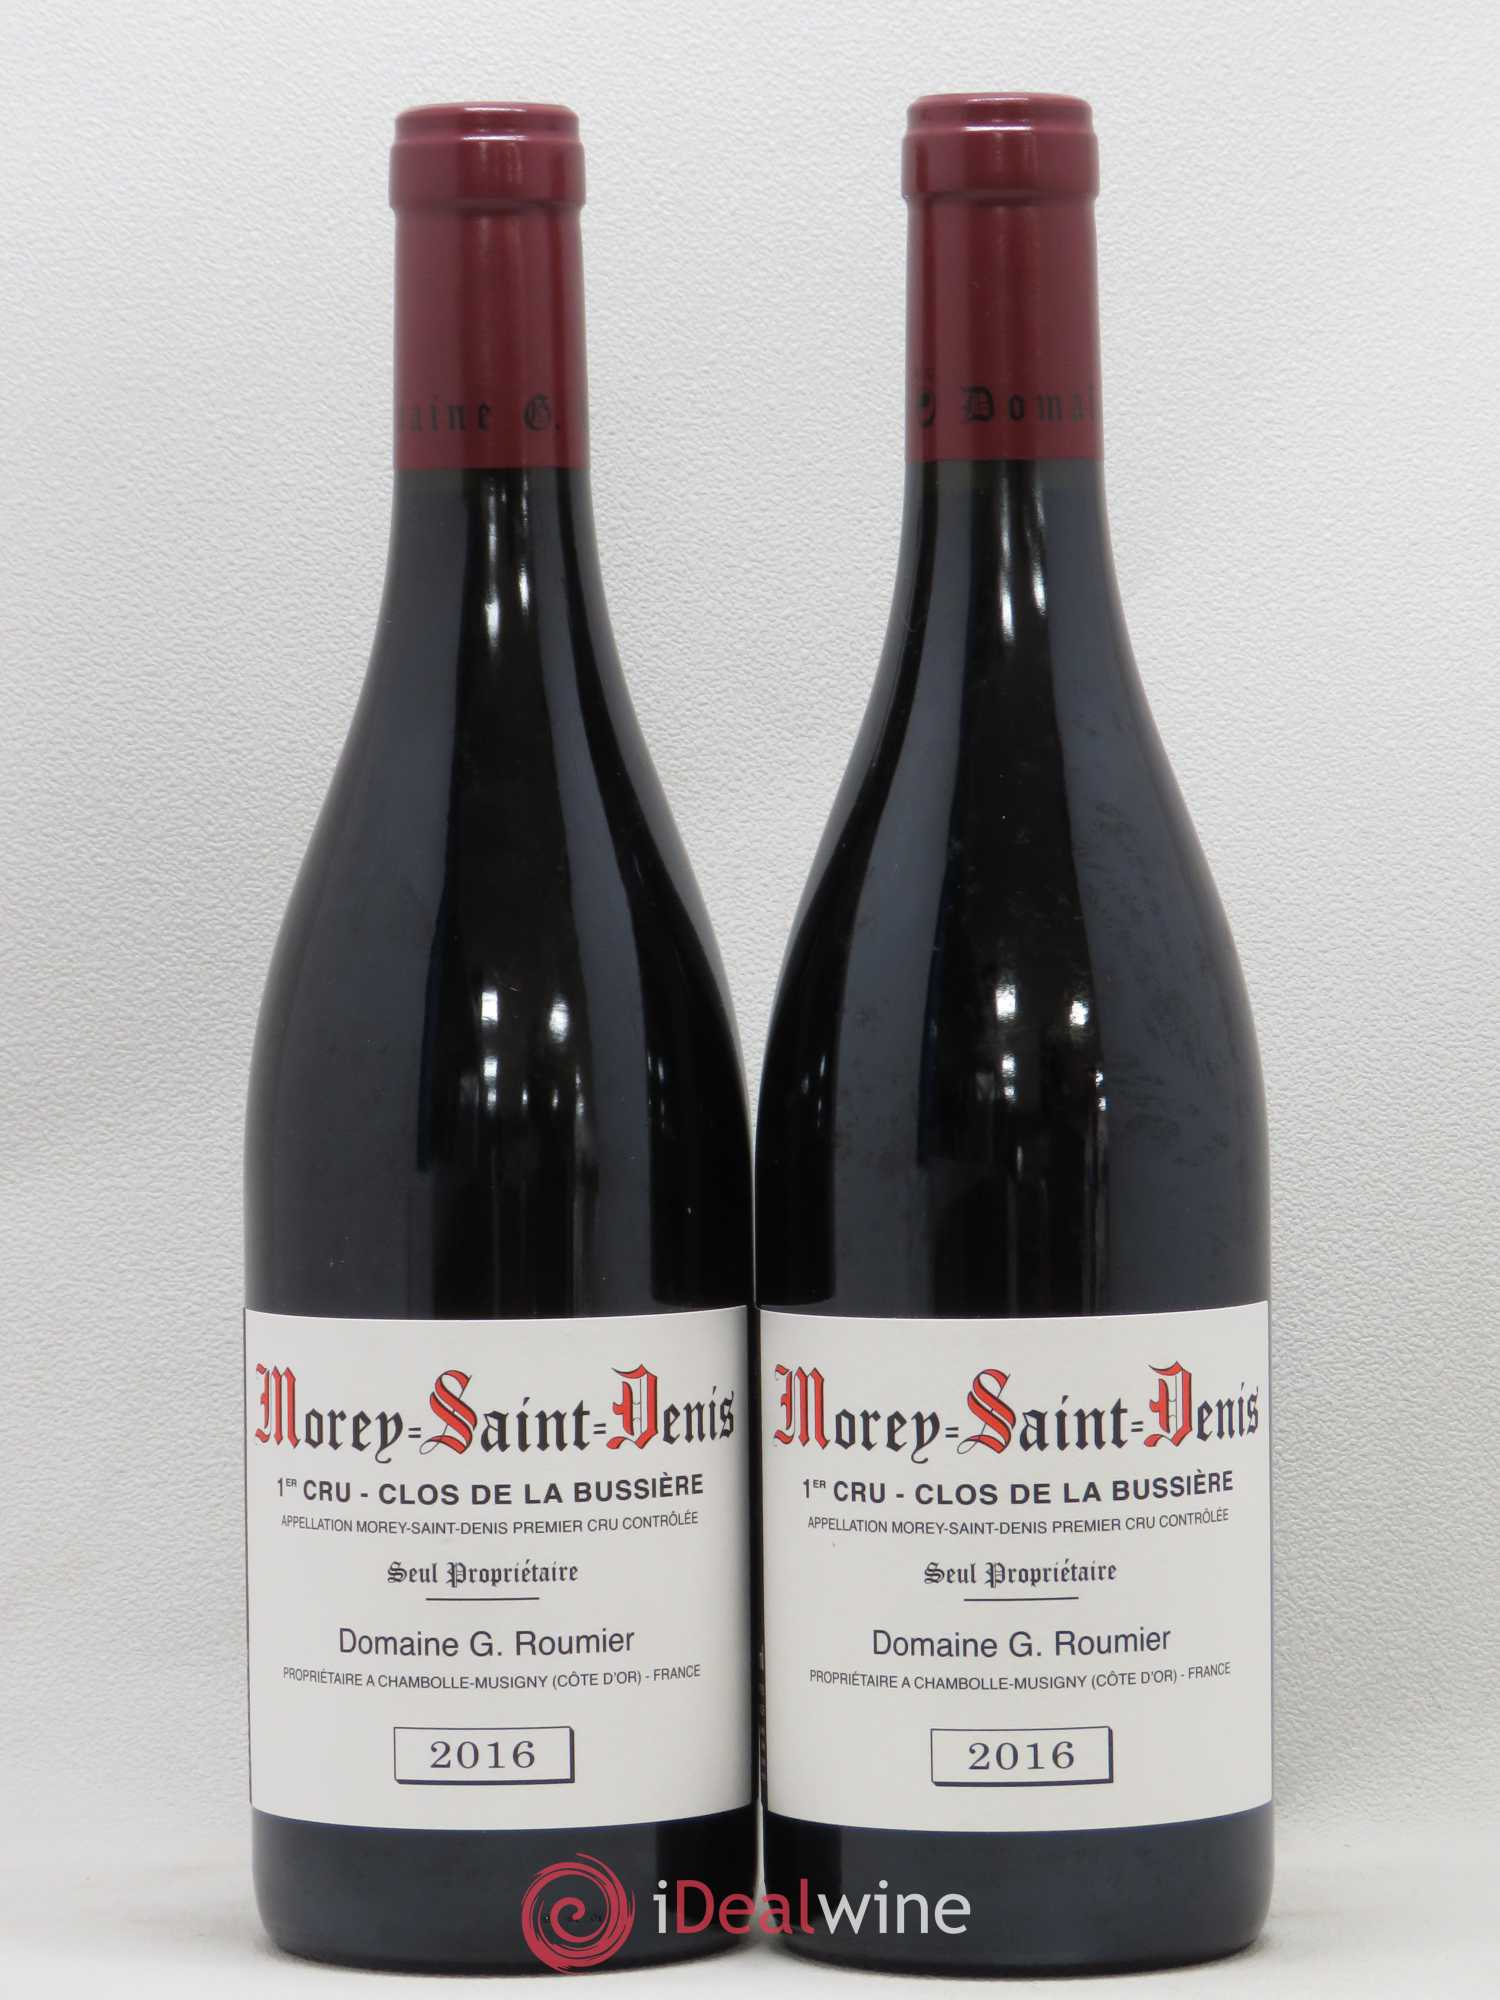 Morey Saint-Denis 1er Cru Clos de la Bussière Georges Roumier (Domaine)  2016 - Lot of 2 Bottles